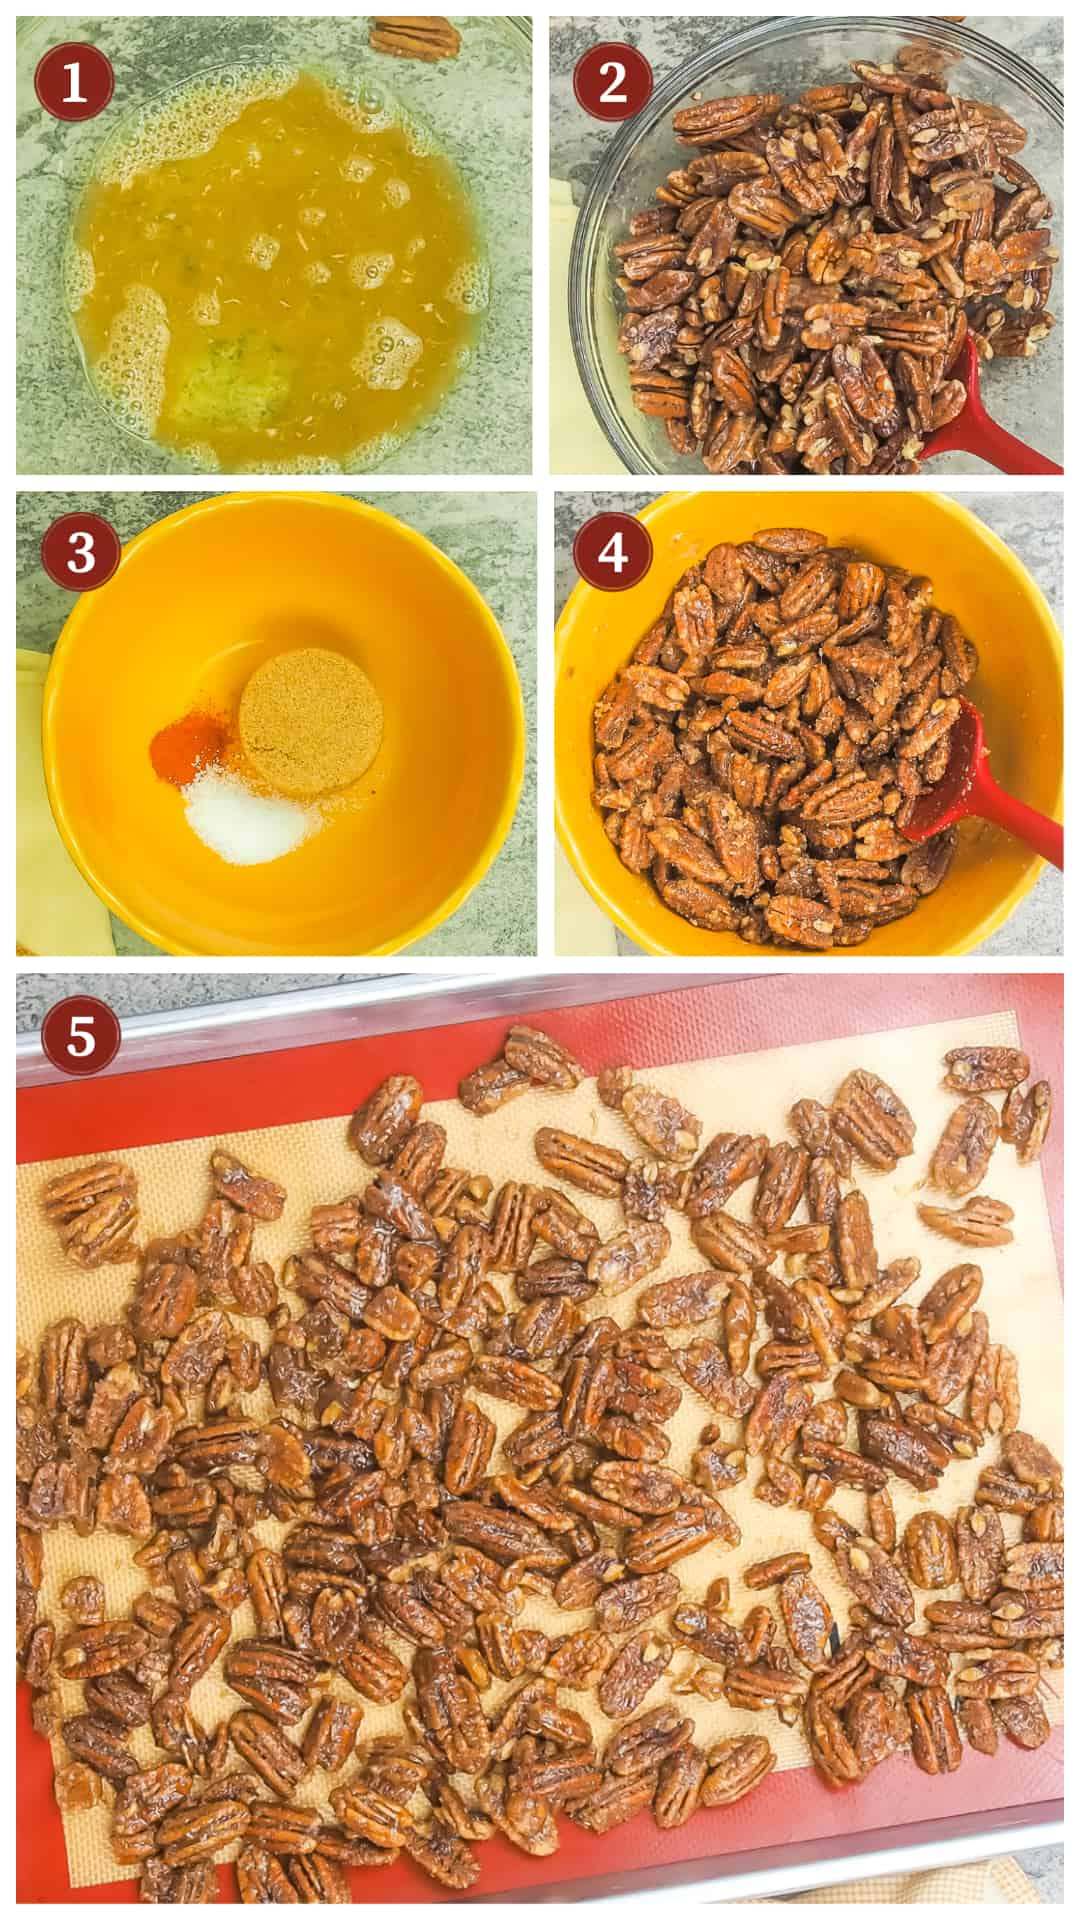 a process of images showing the steps to make candied pecans, steps 1 - 5.